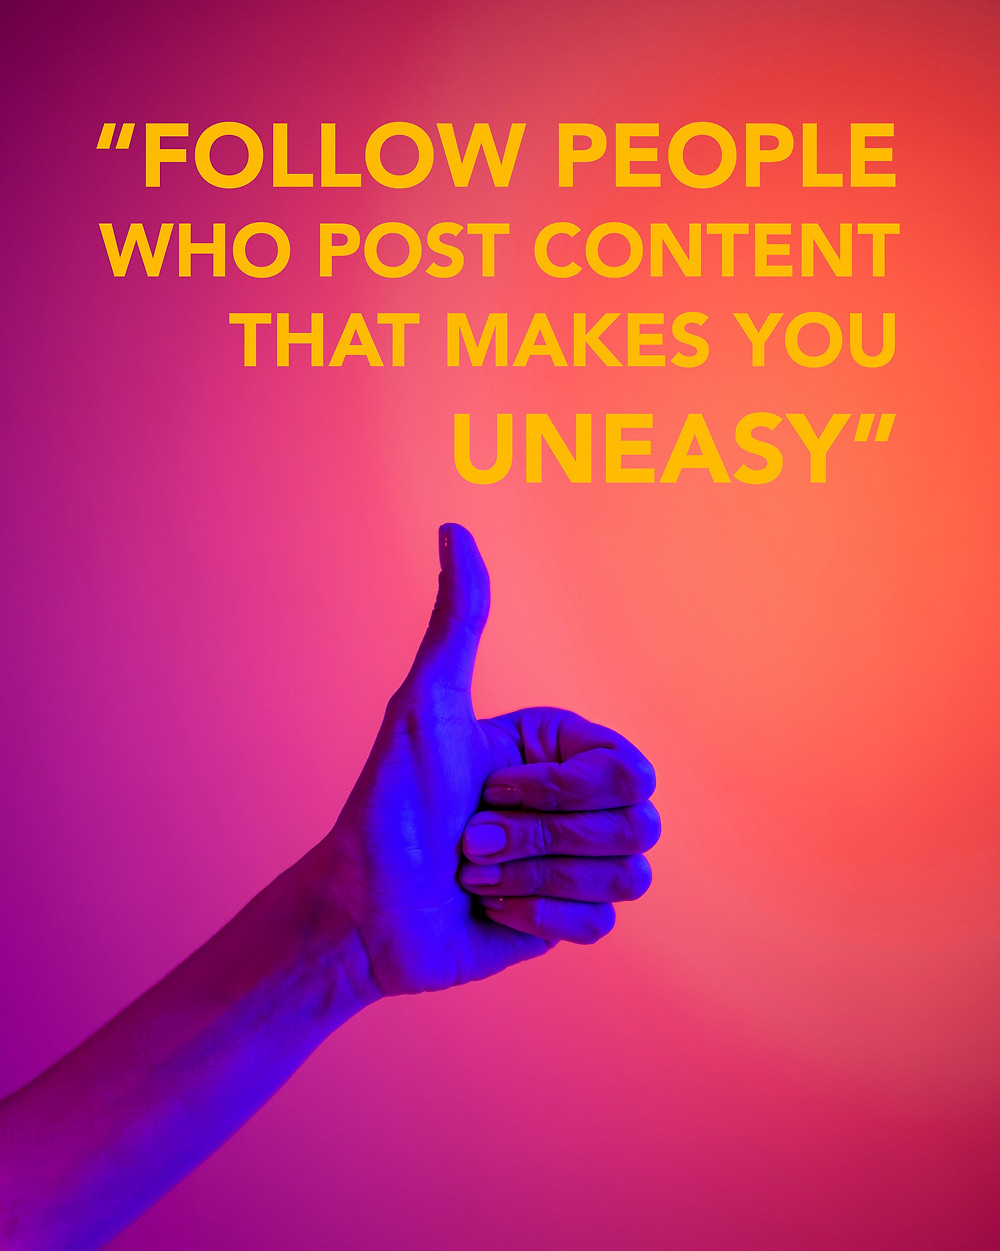 """A harsh blue light illuminates a hand giving a thumbs up sign against a pink and peach gradient background. Above the thumbs up, the quote """"Follow people who post content that makes you uneasy"""""""